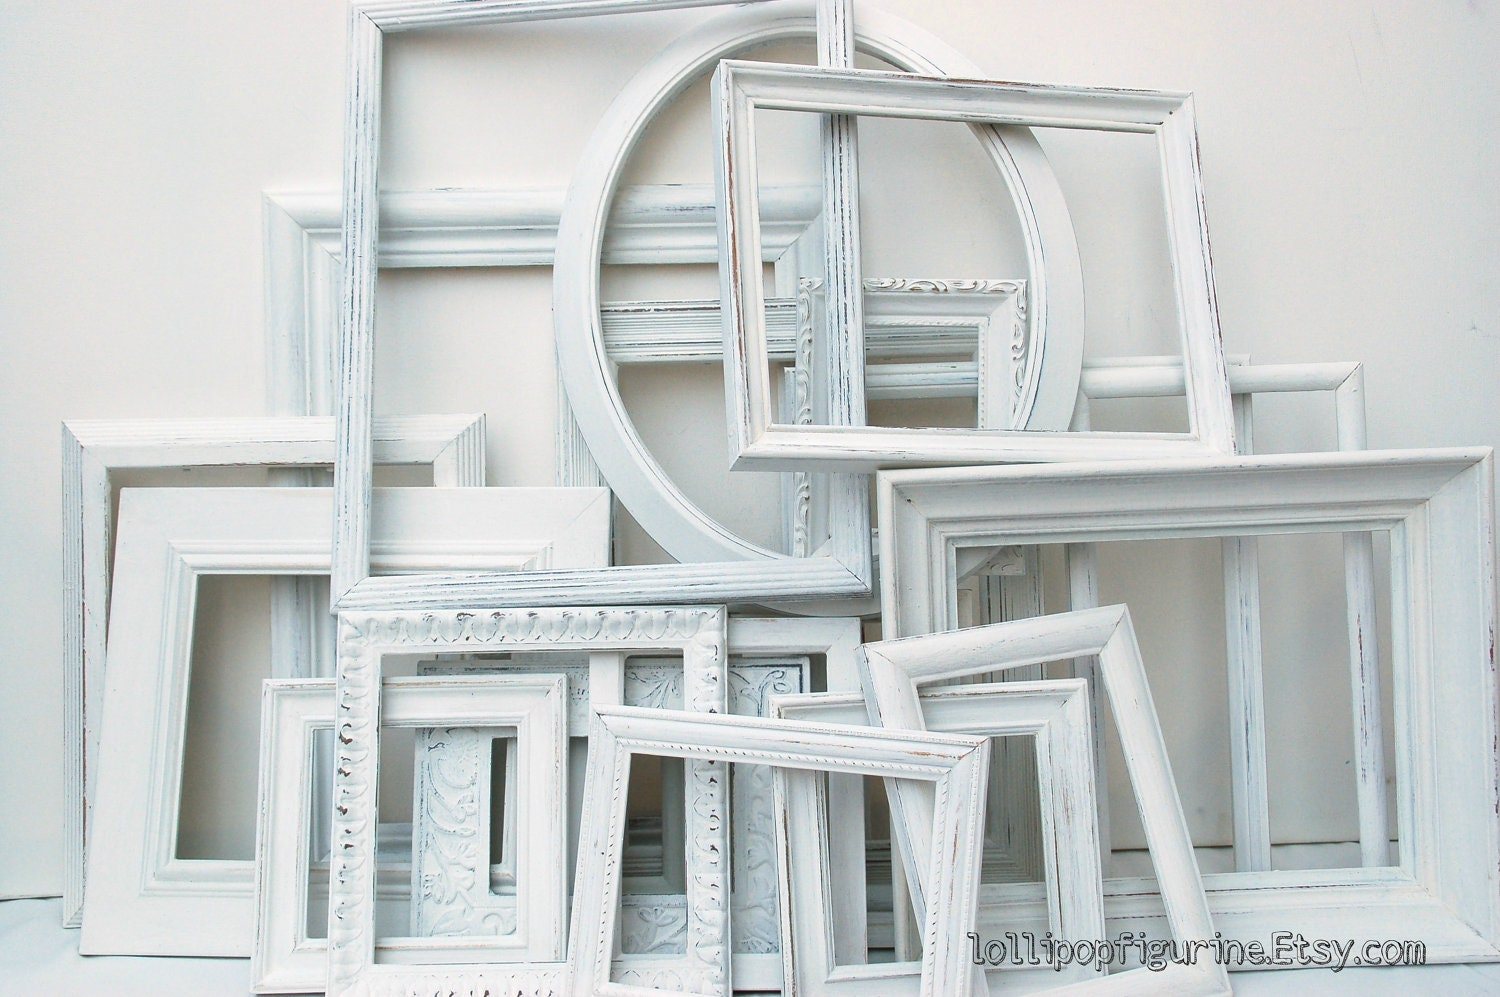 White frame collection set of 20 white shabby chic frames great for wedding or home decor - Lollipopfigurine